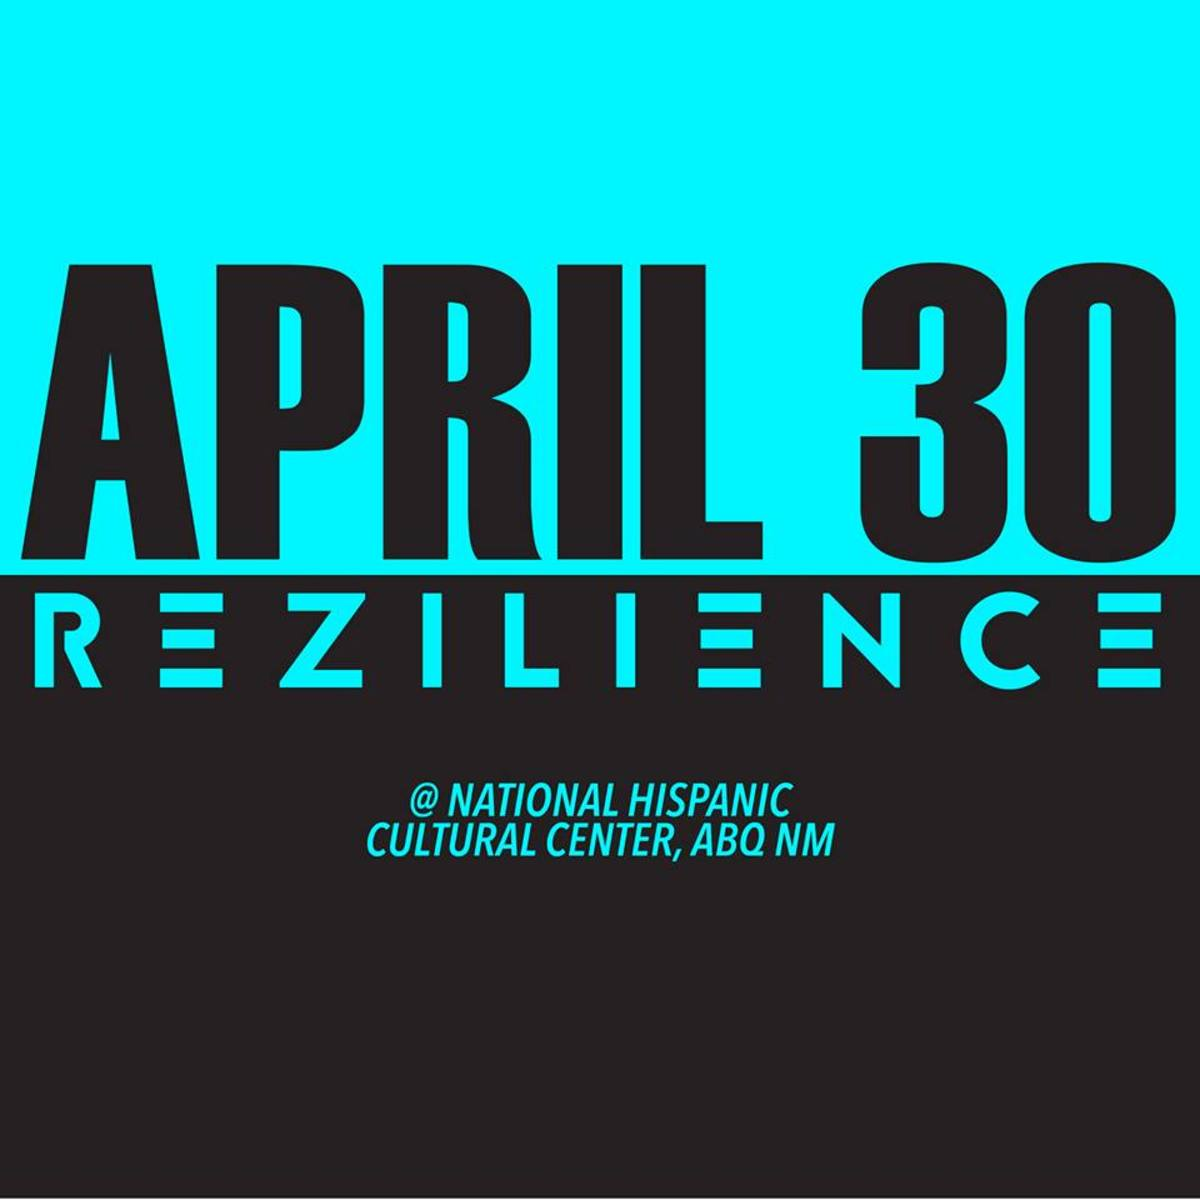 REZILIENCE to be held in Albuquerque, April 29-30